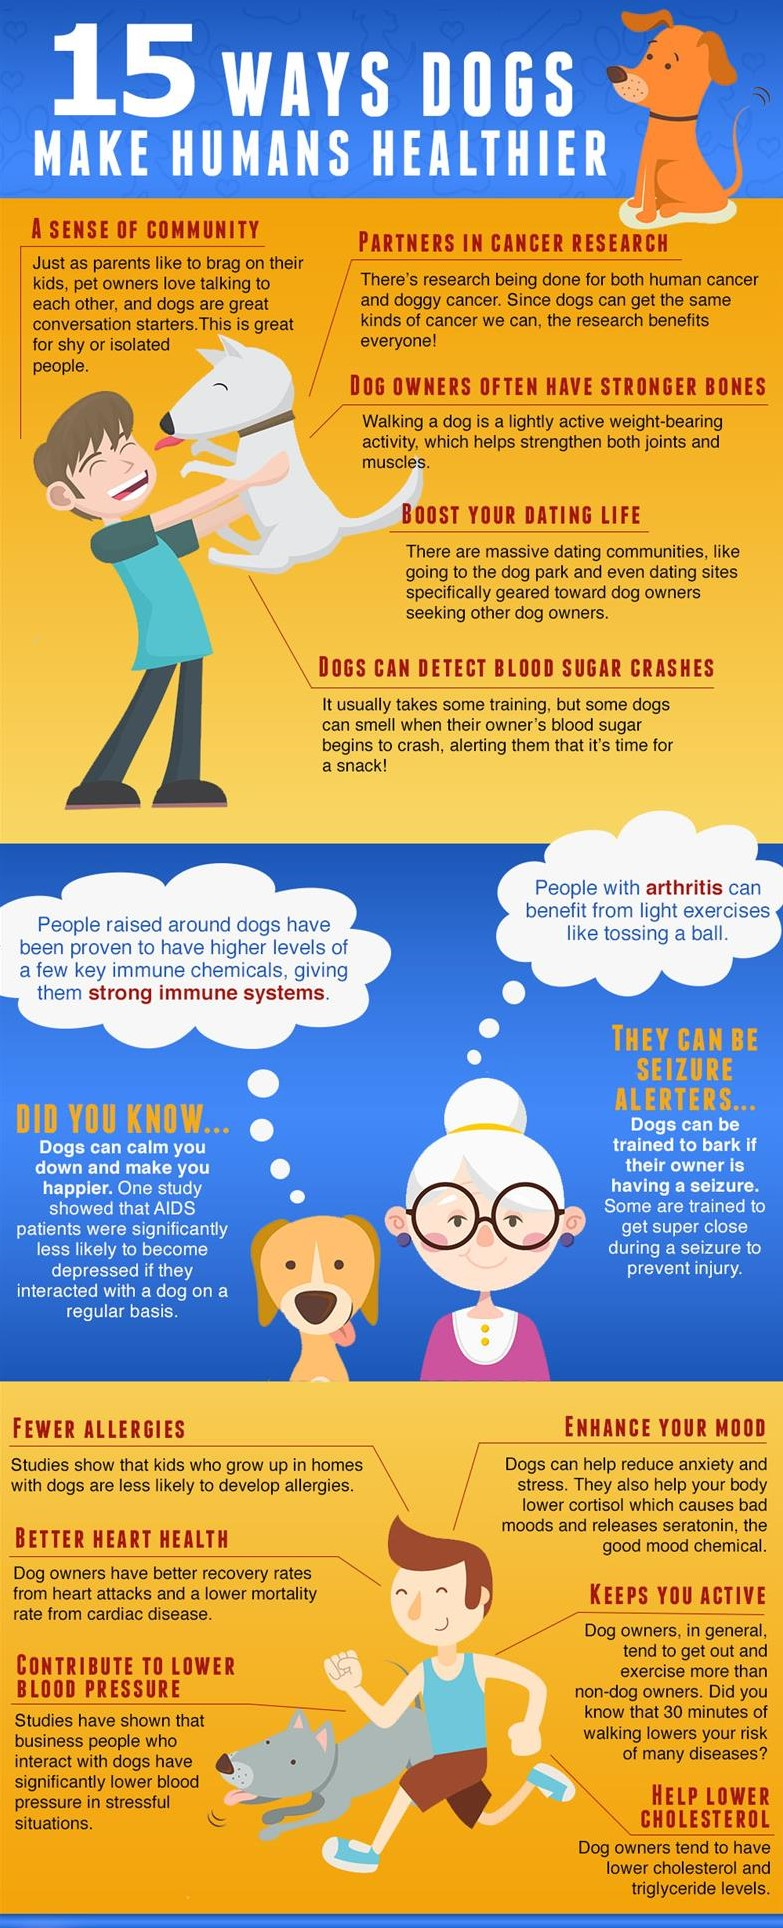 Infographic February Roundup: 20 of Our Favorite Small Business Marketing Tips